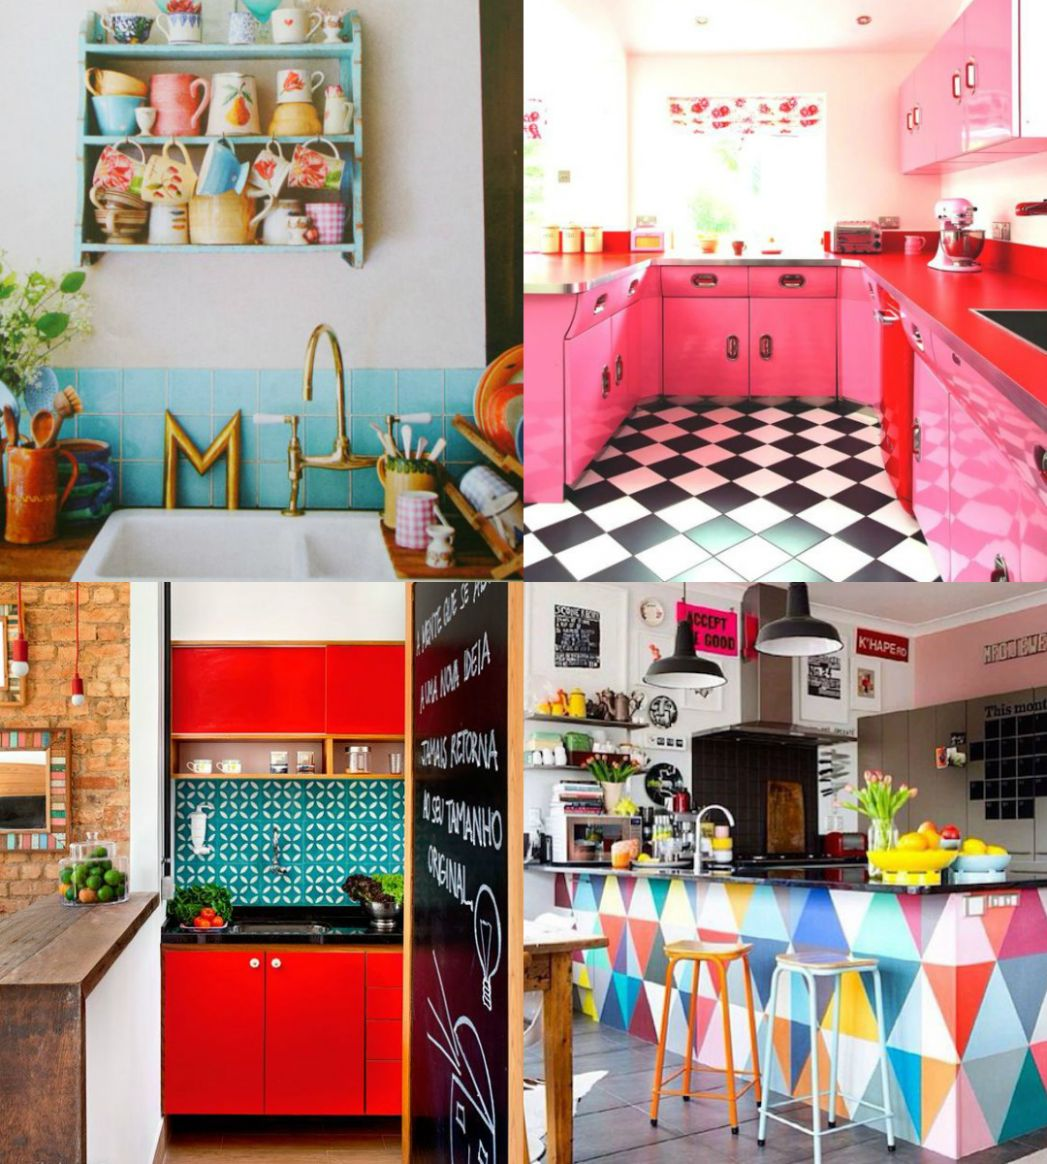 Ever So Juliet | Edinburgh lifestyle blog: COLOURFUL KITCHEN IDEAS